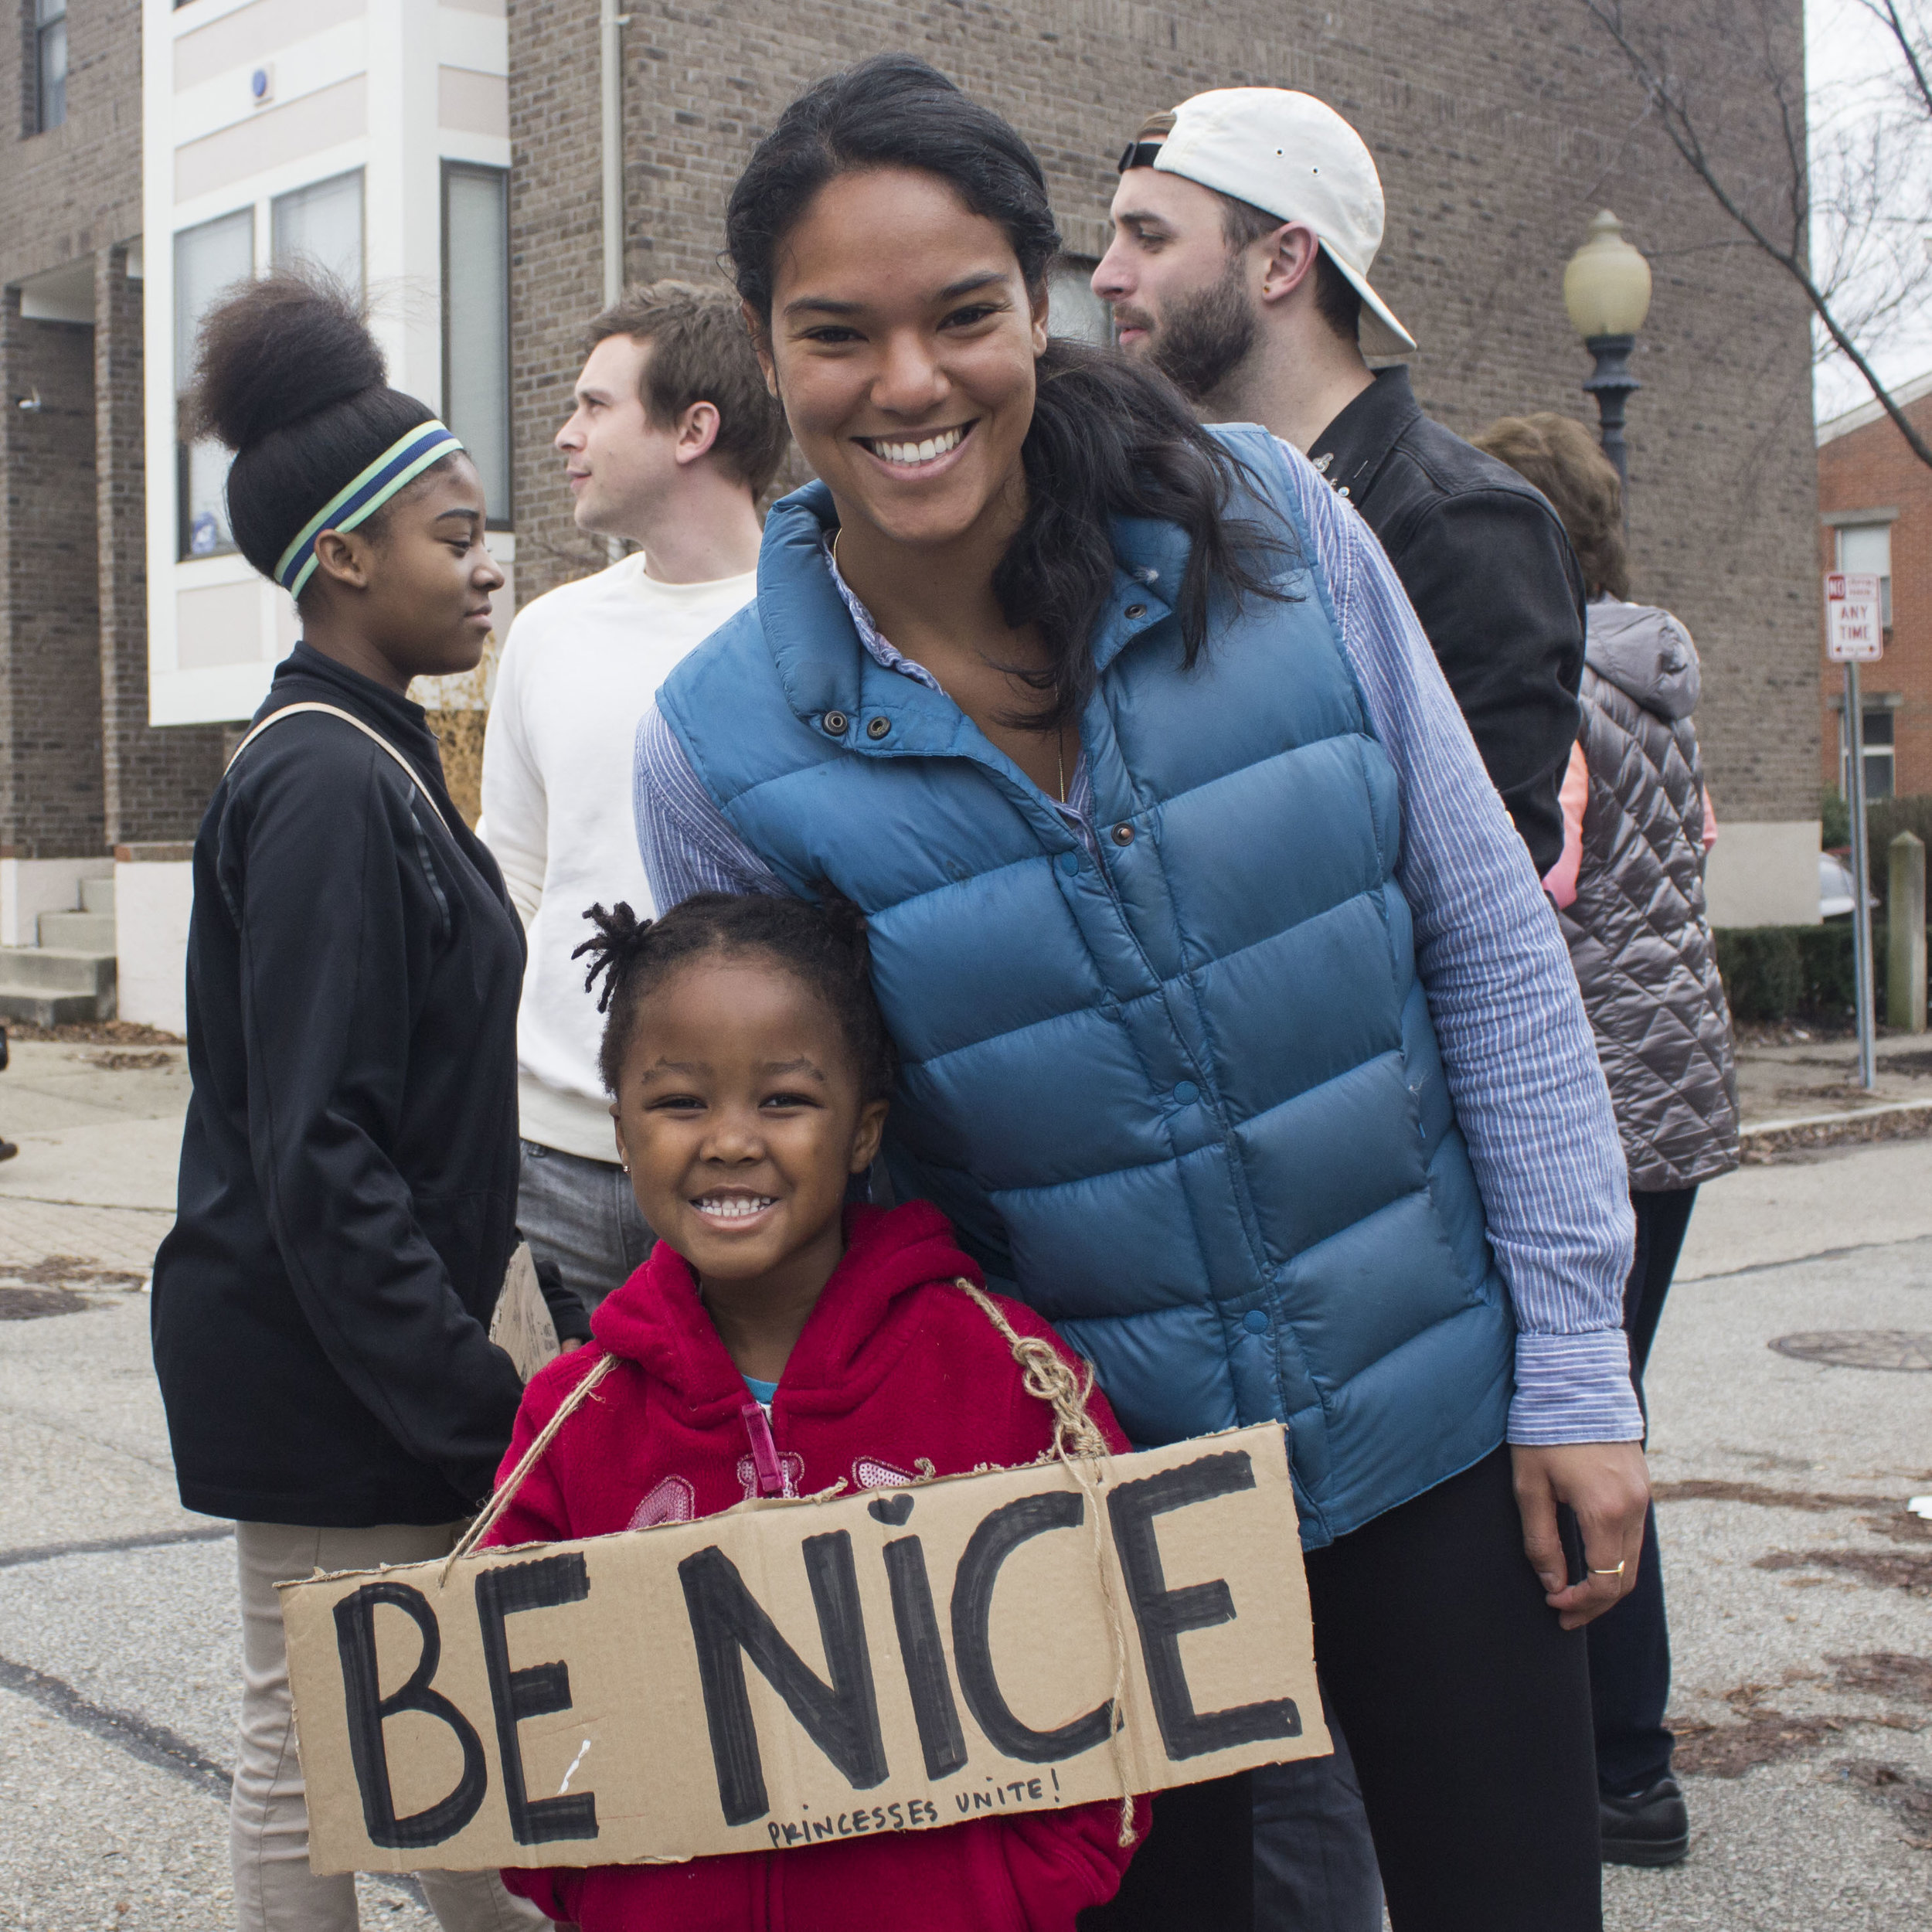 """""""I am marching because of this future superhero,"""" said Destinee Thomas, who marched with her five-year-old niece. """"Today she insisted on putting 'princess' on her poster, and I want her to think of 'princess' as something more powerful than just being pretty."""""""